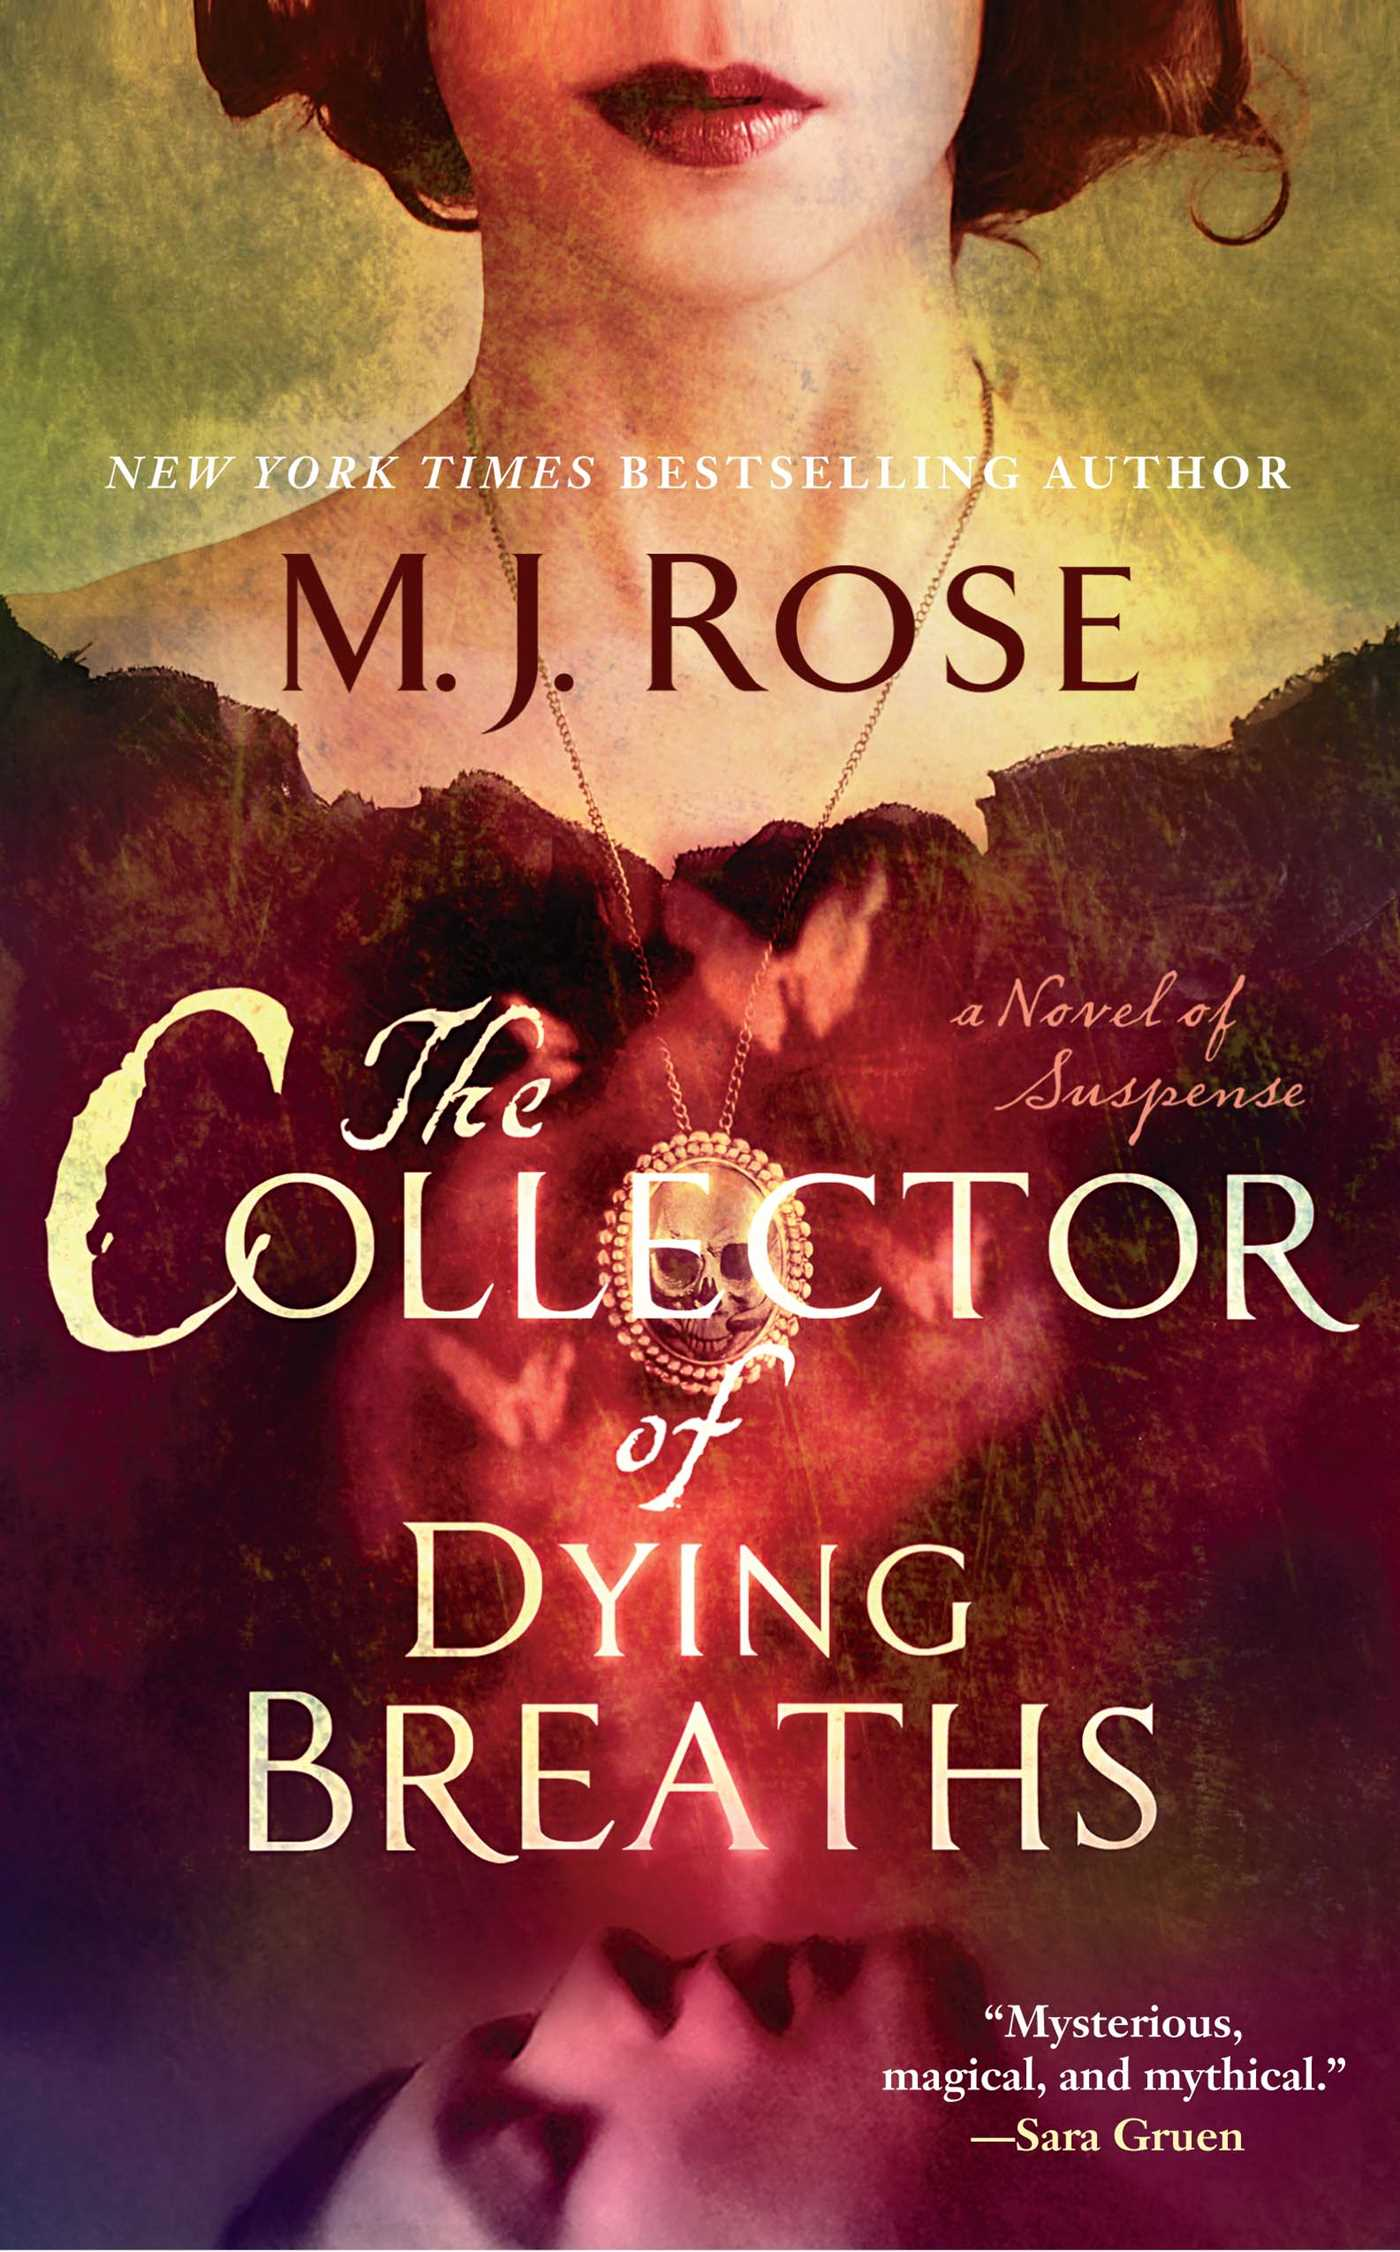 The collector of dying breaths 9781451621556 hr